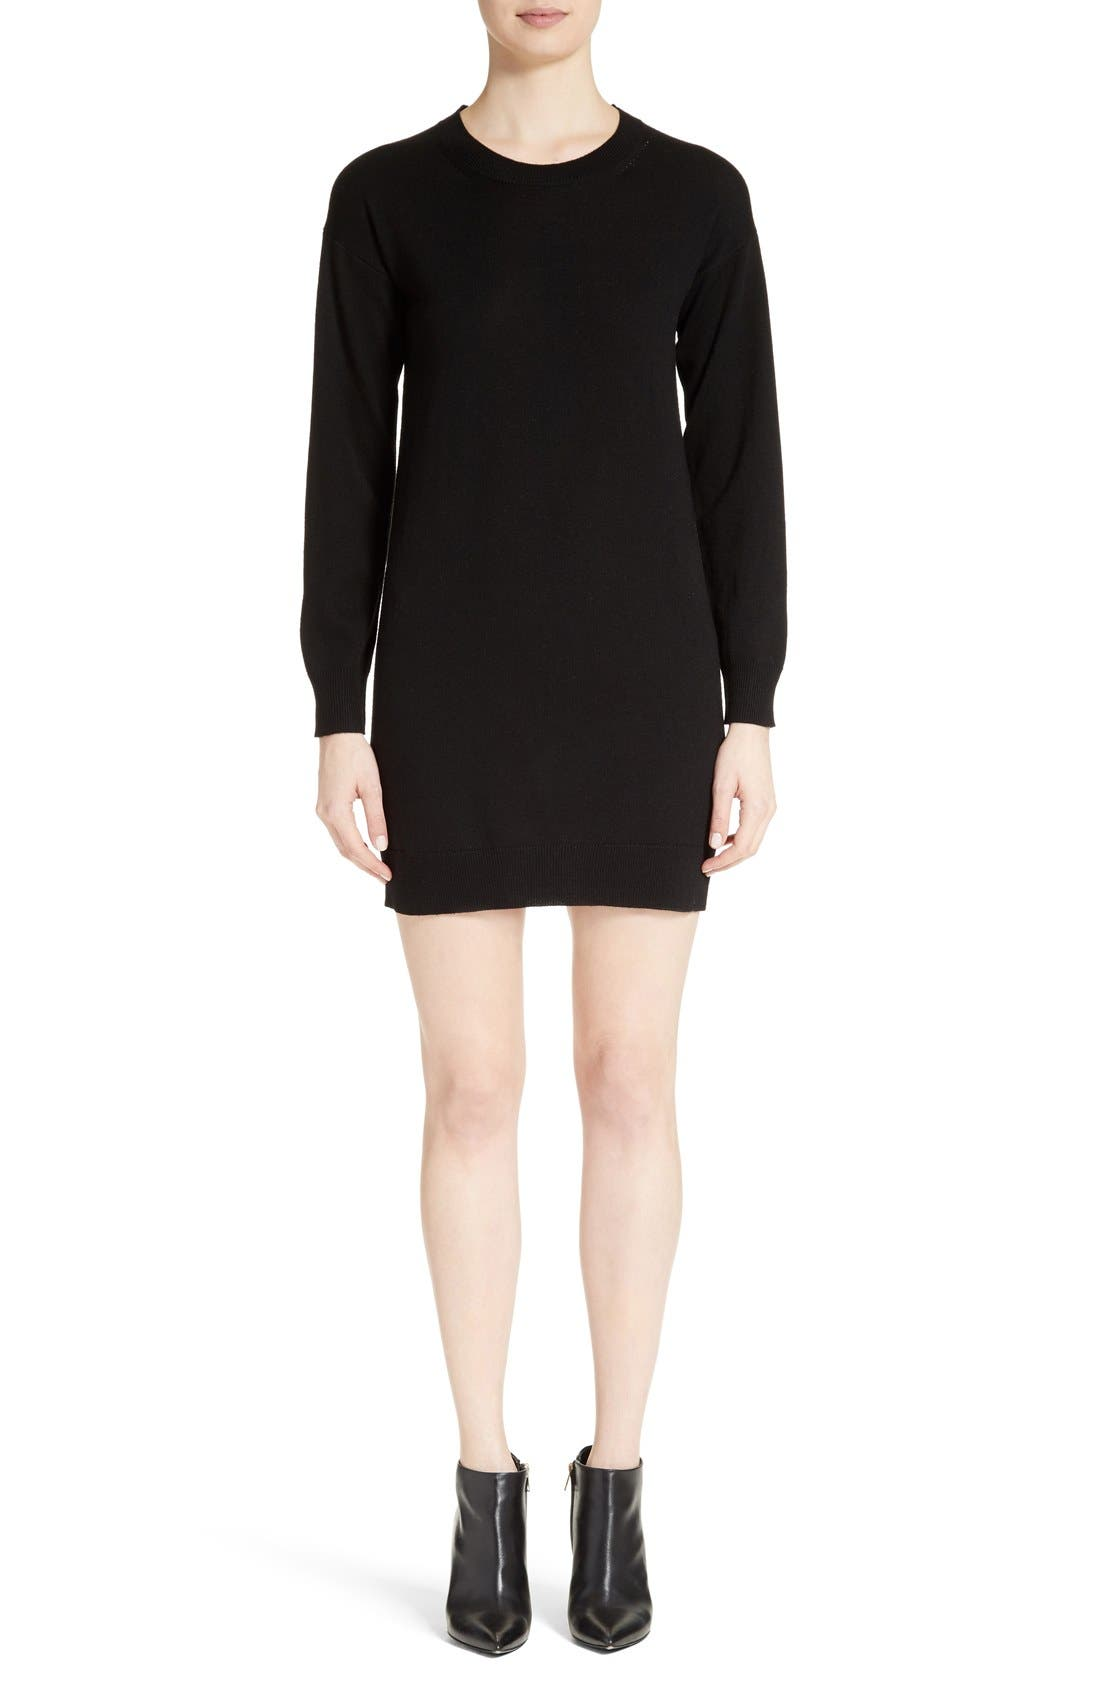 Alewater Elbow Patch Merino Wool Dress,                         Main,                         color, BLACK